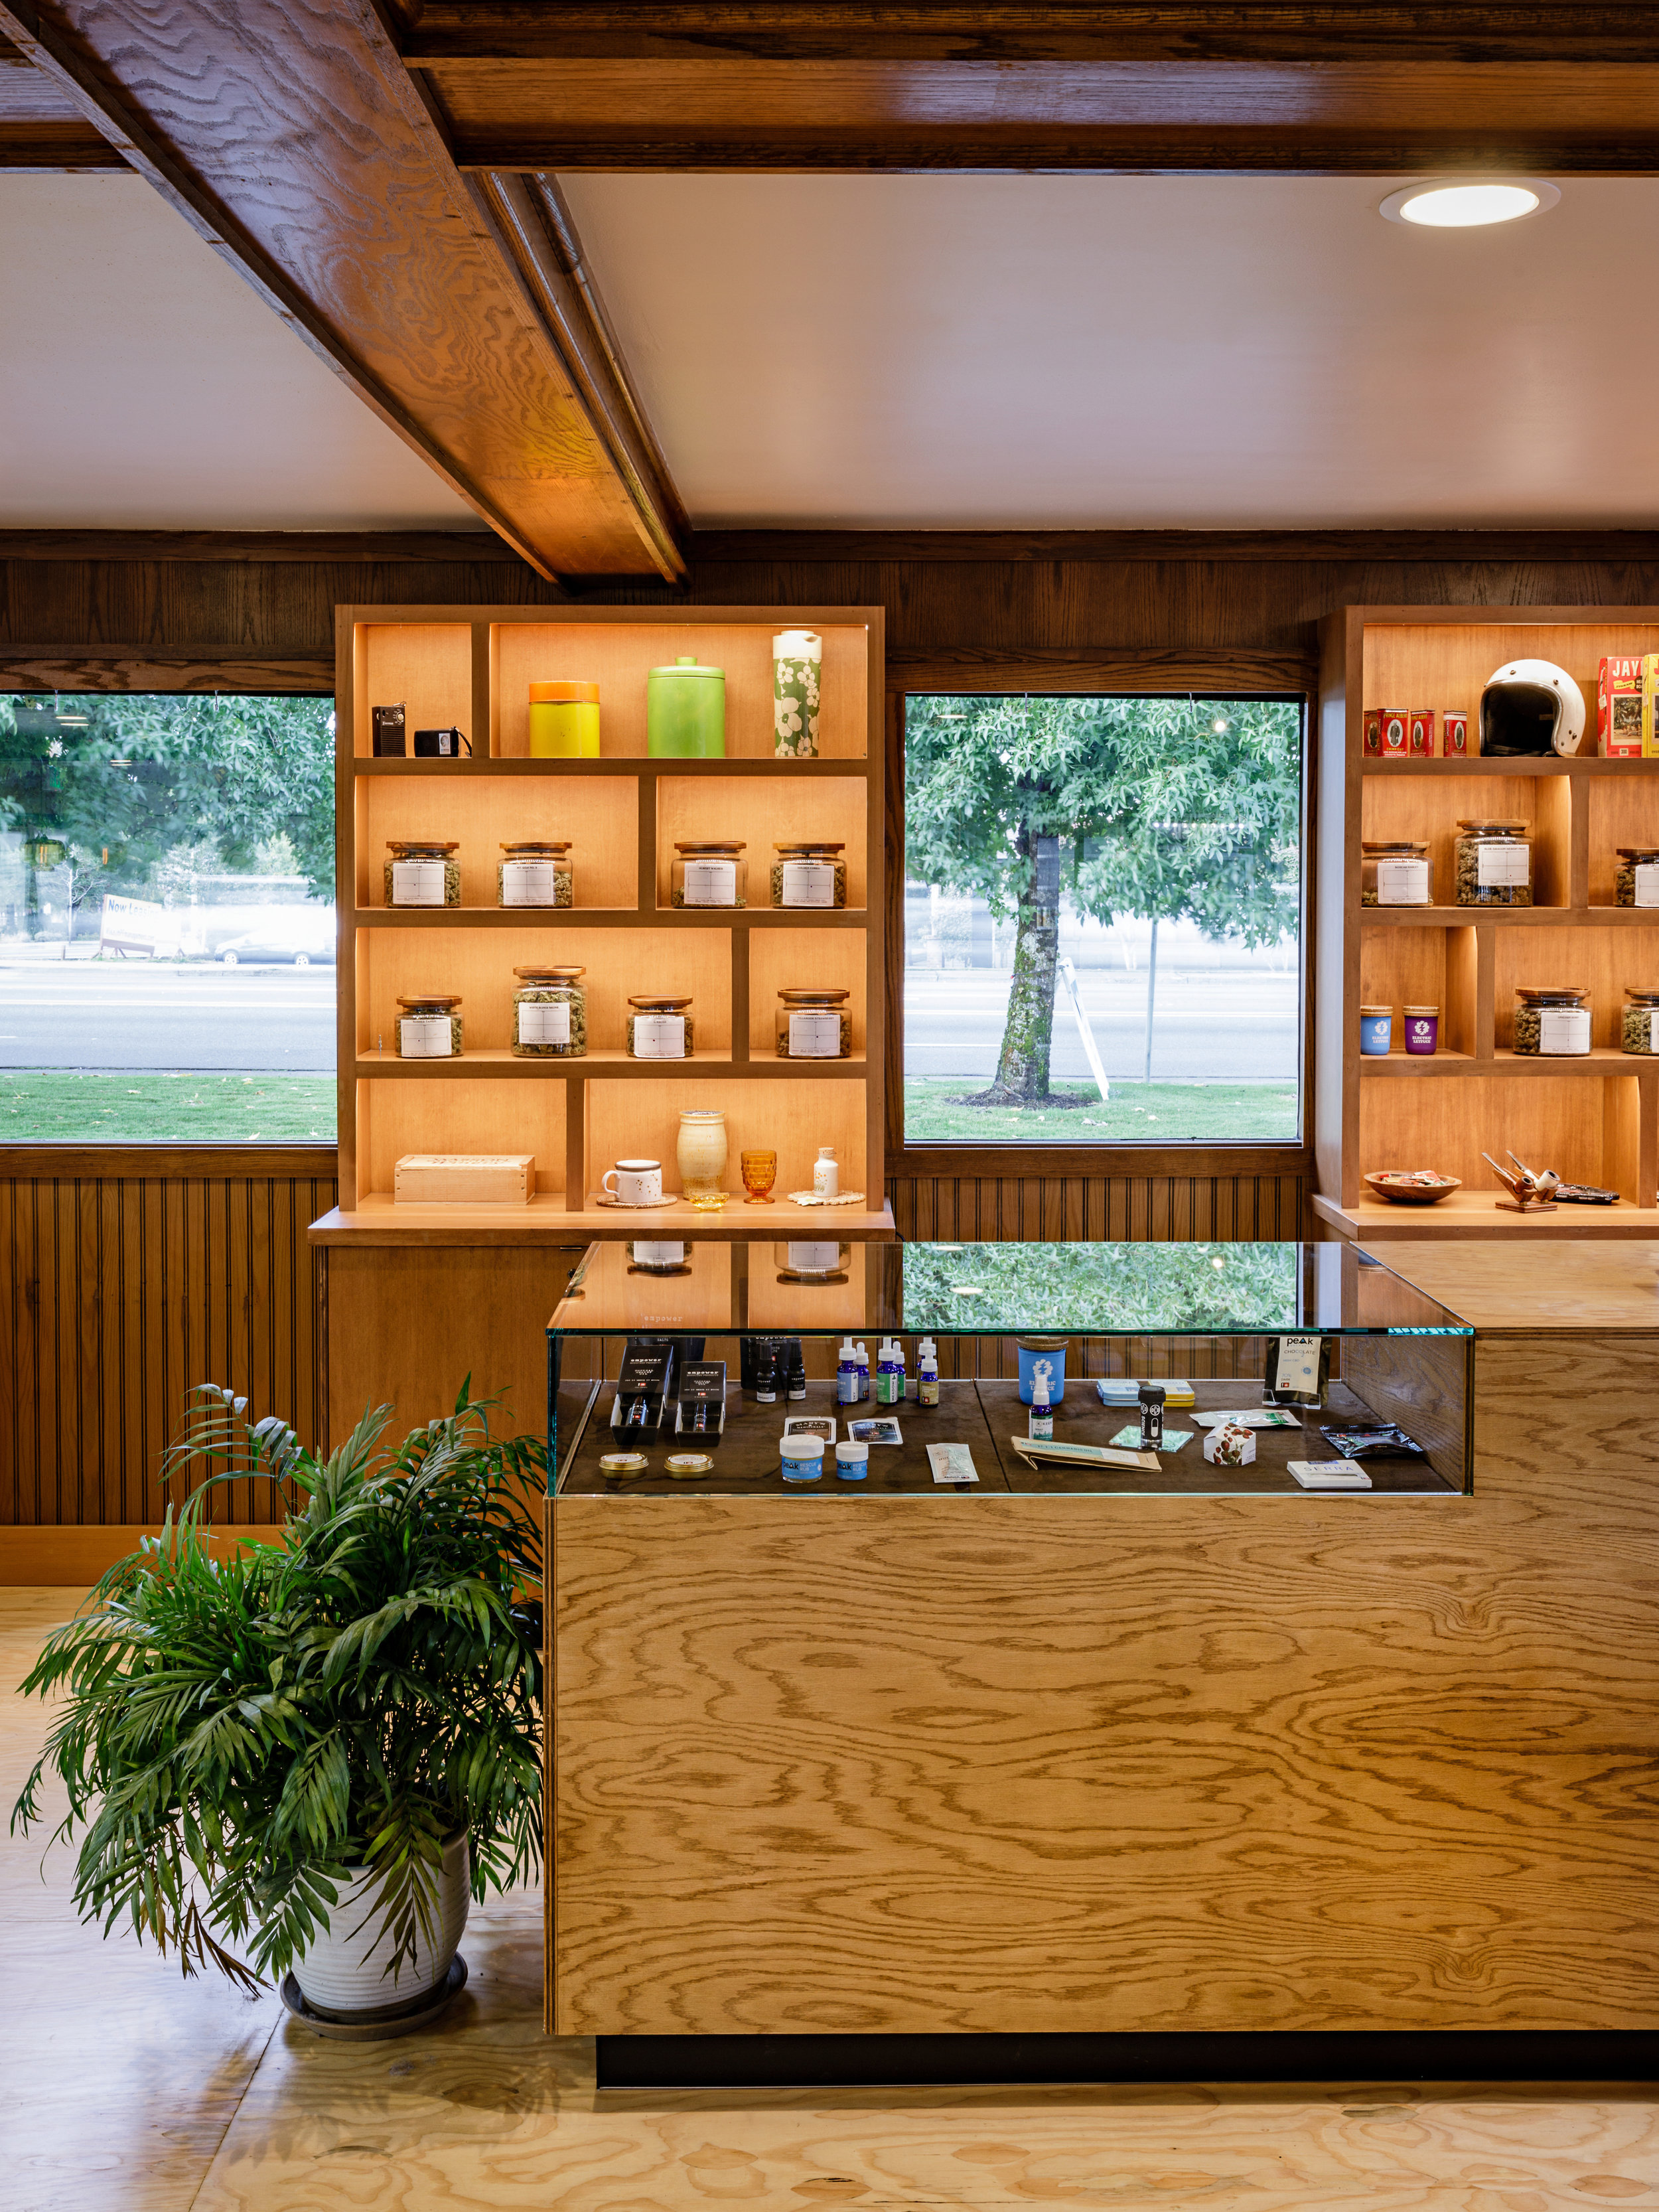 archinect - Electric Lettuce Redefines The Retail Marijuana Experience With A Polished 1960's VibeAugust 2018